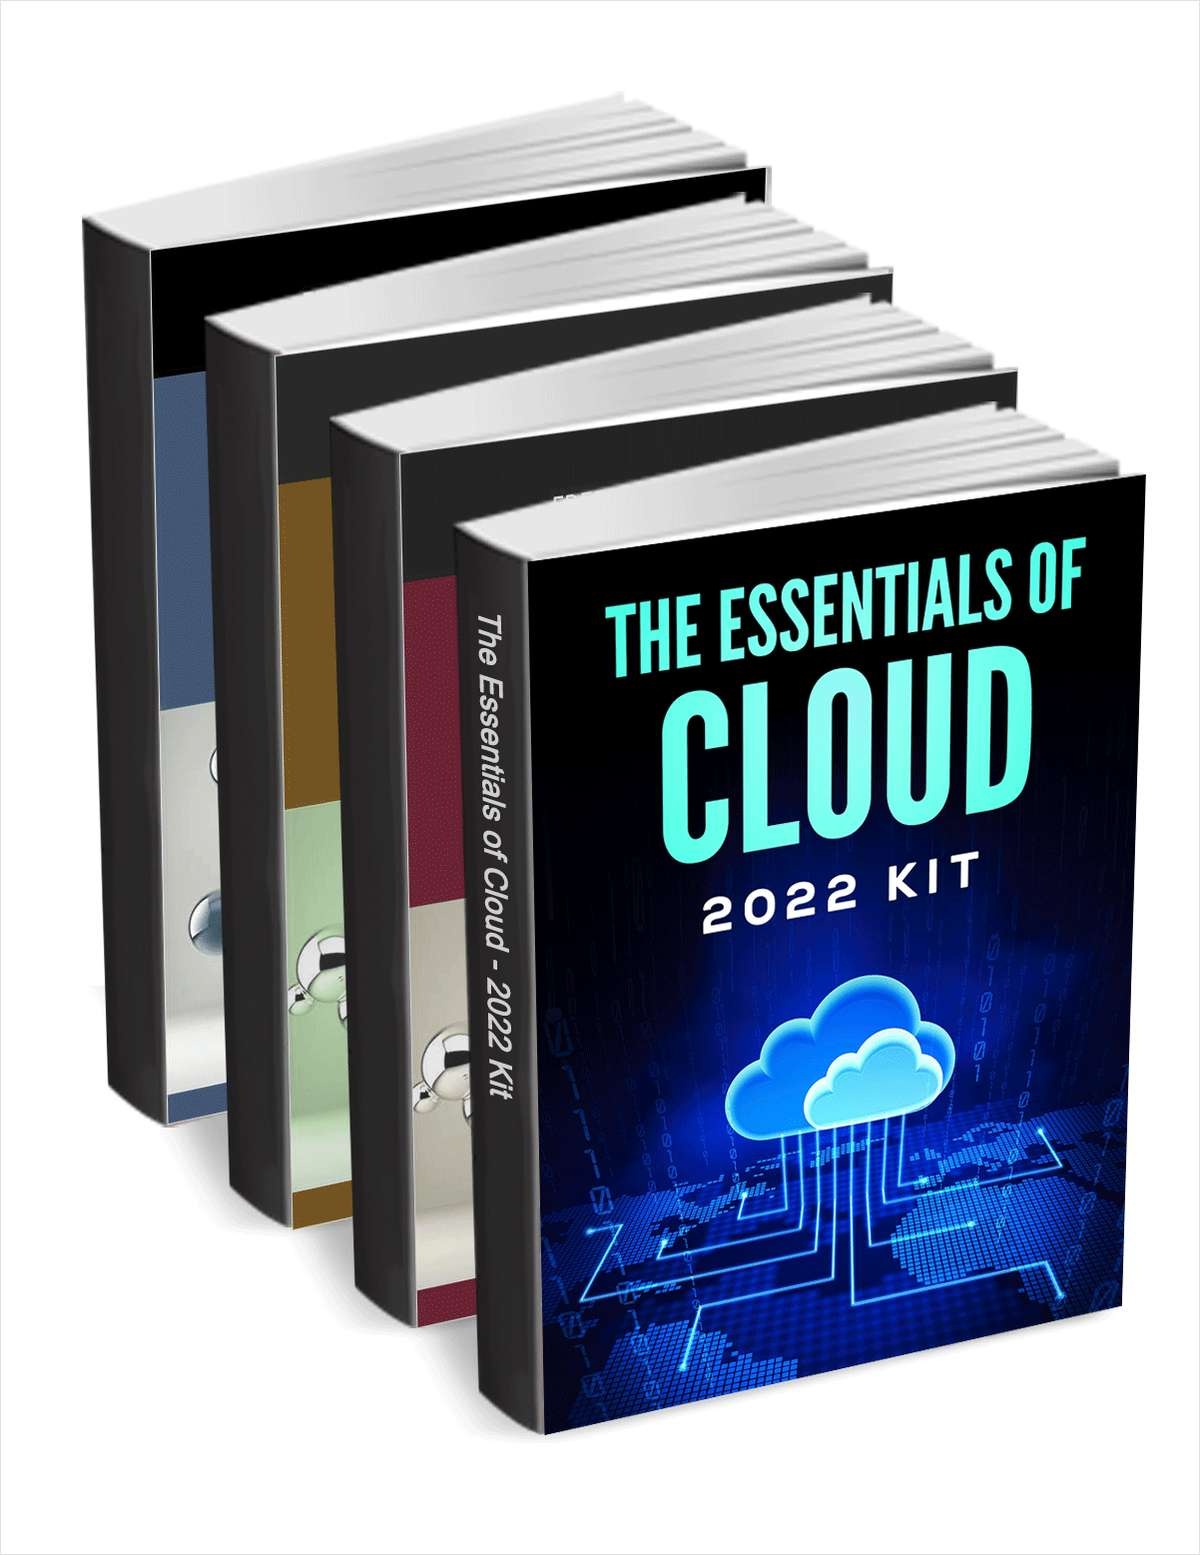 The Essentials of Cloud - 2017 Kit